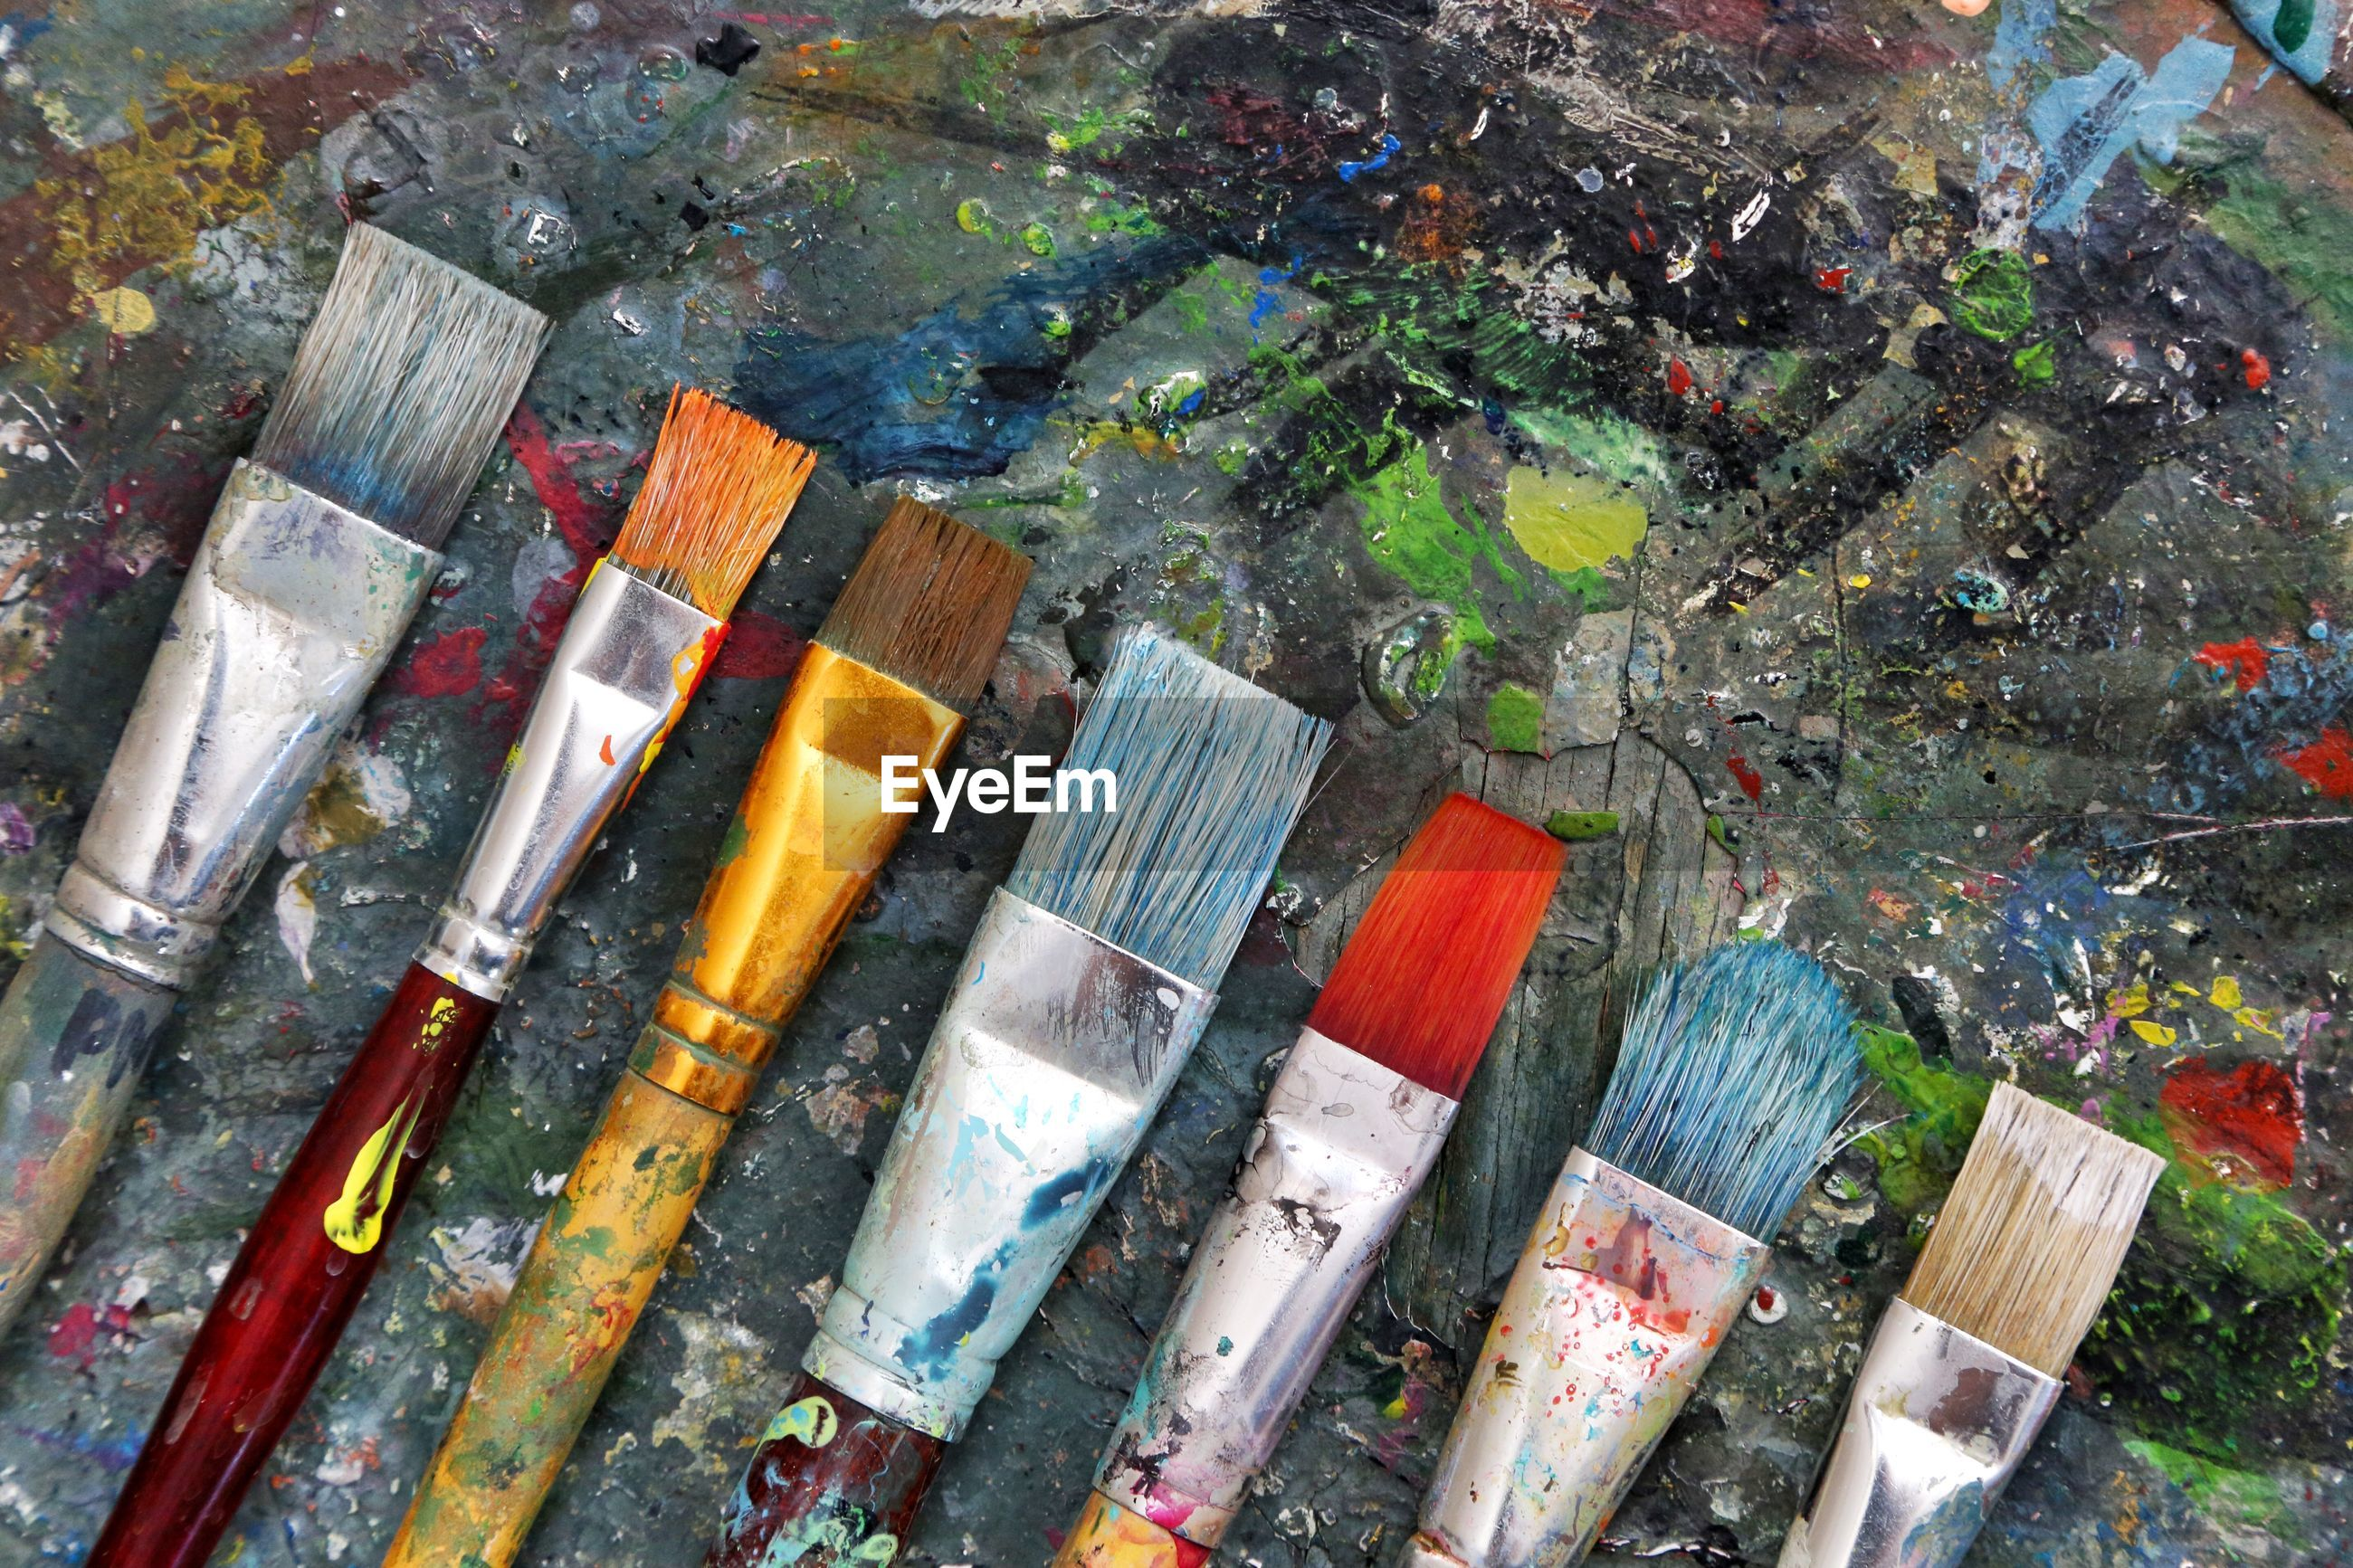 Close-up of paintbrushes on dirty table